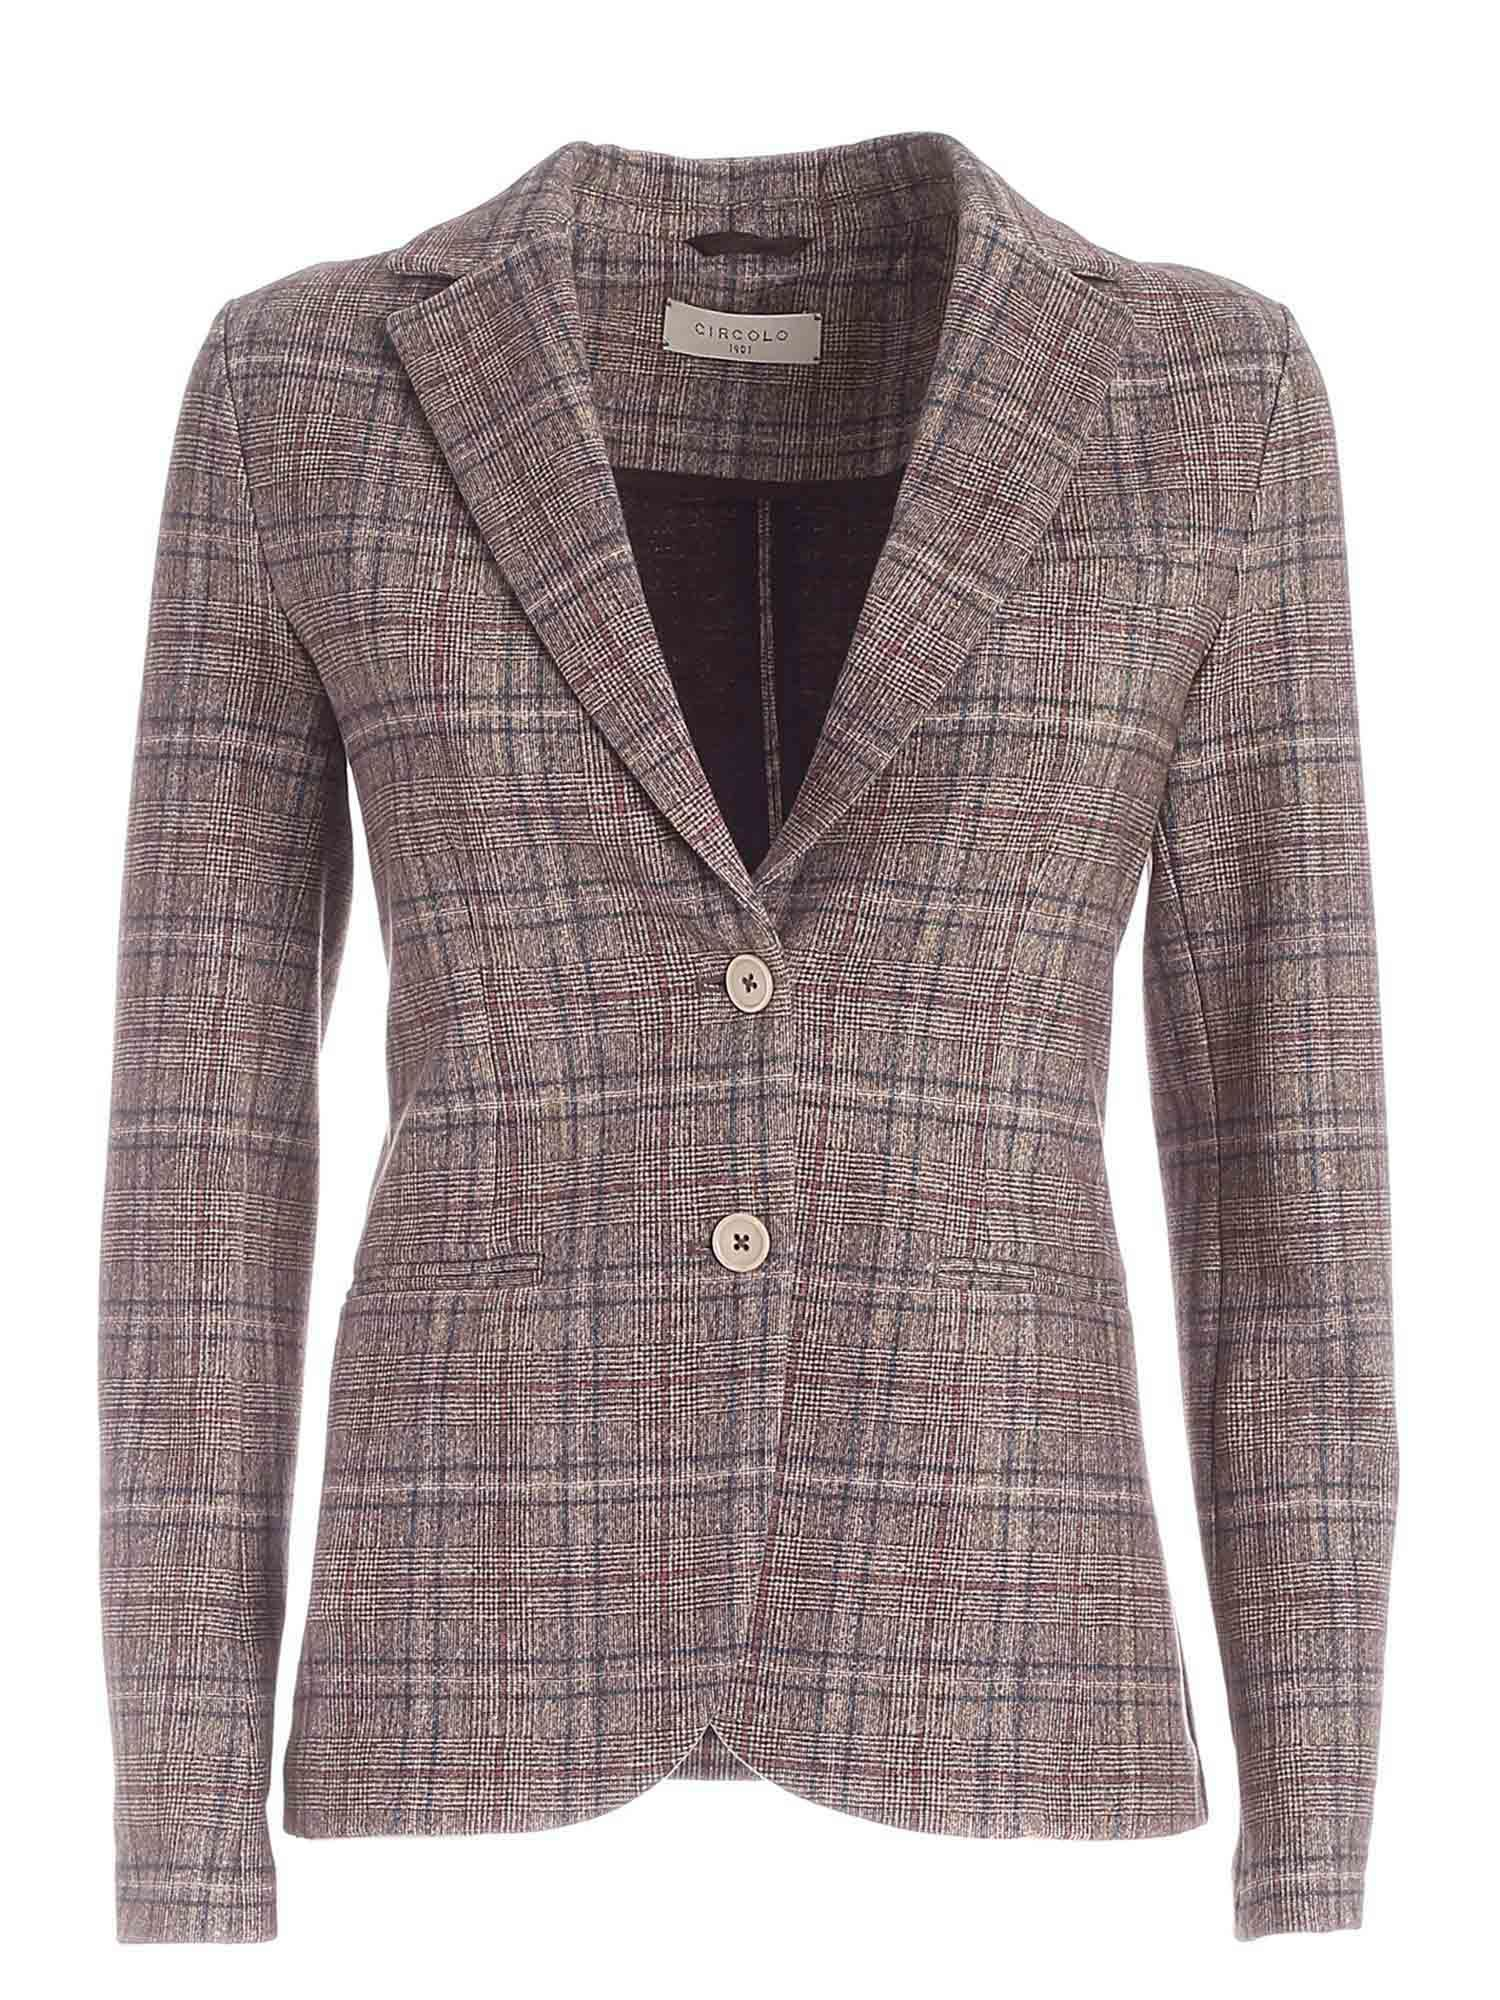 Circolo 1901 CHECKED PATTERN SINGLE-BREASTED JACKET IN BROWN